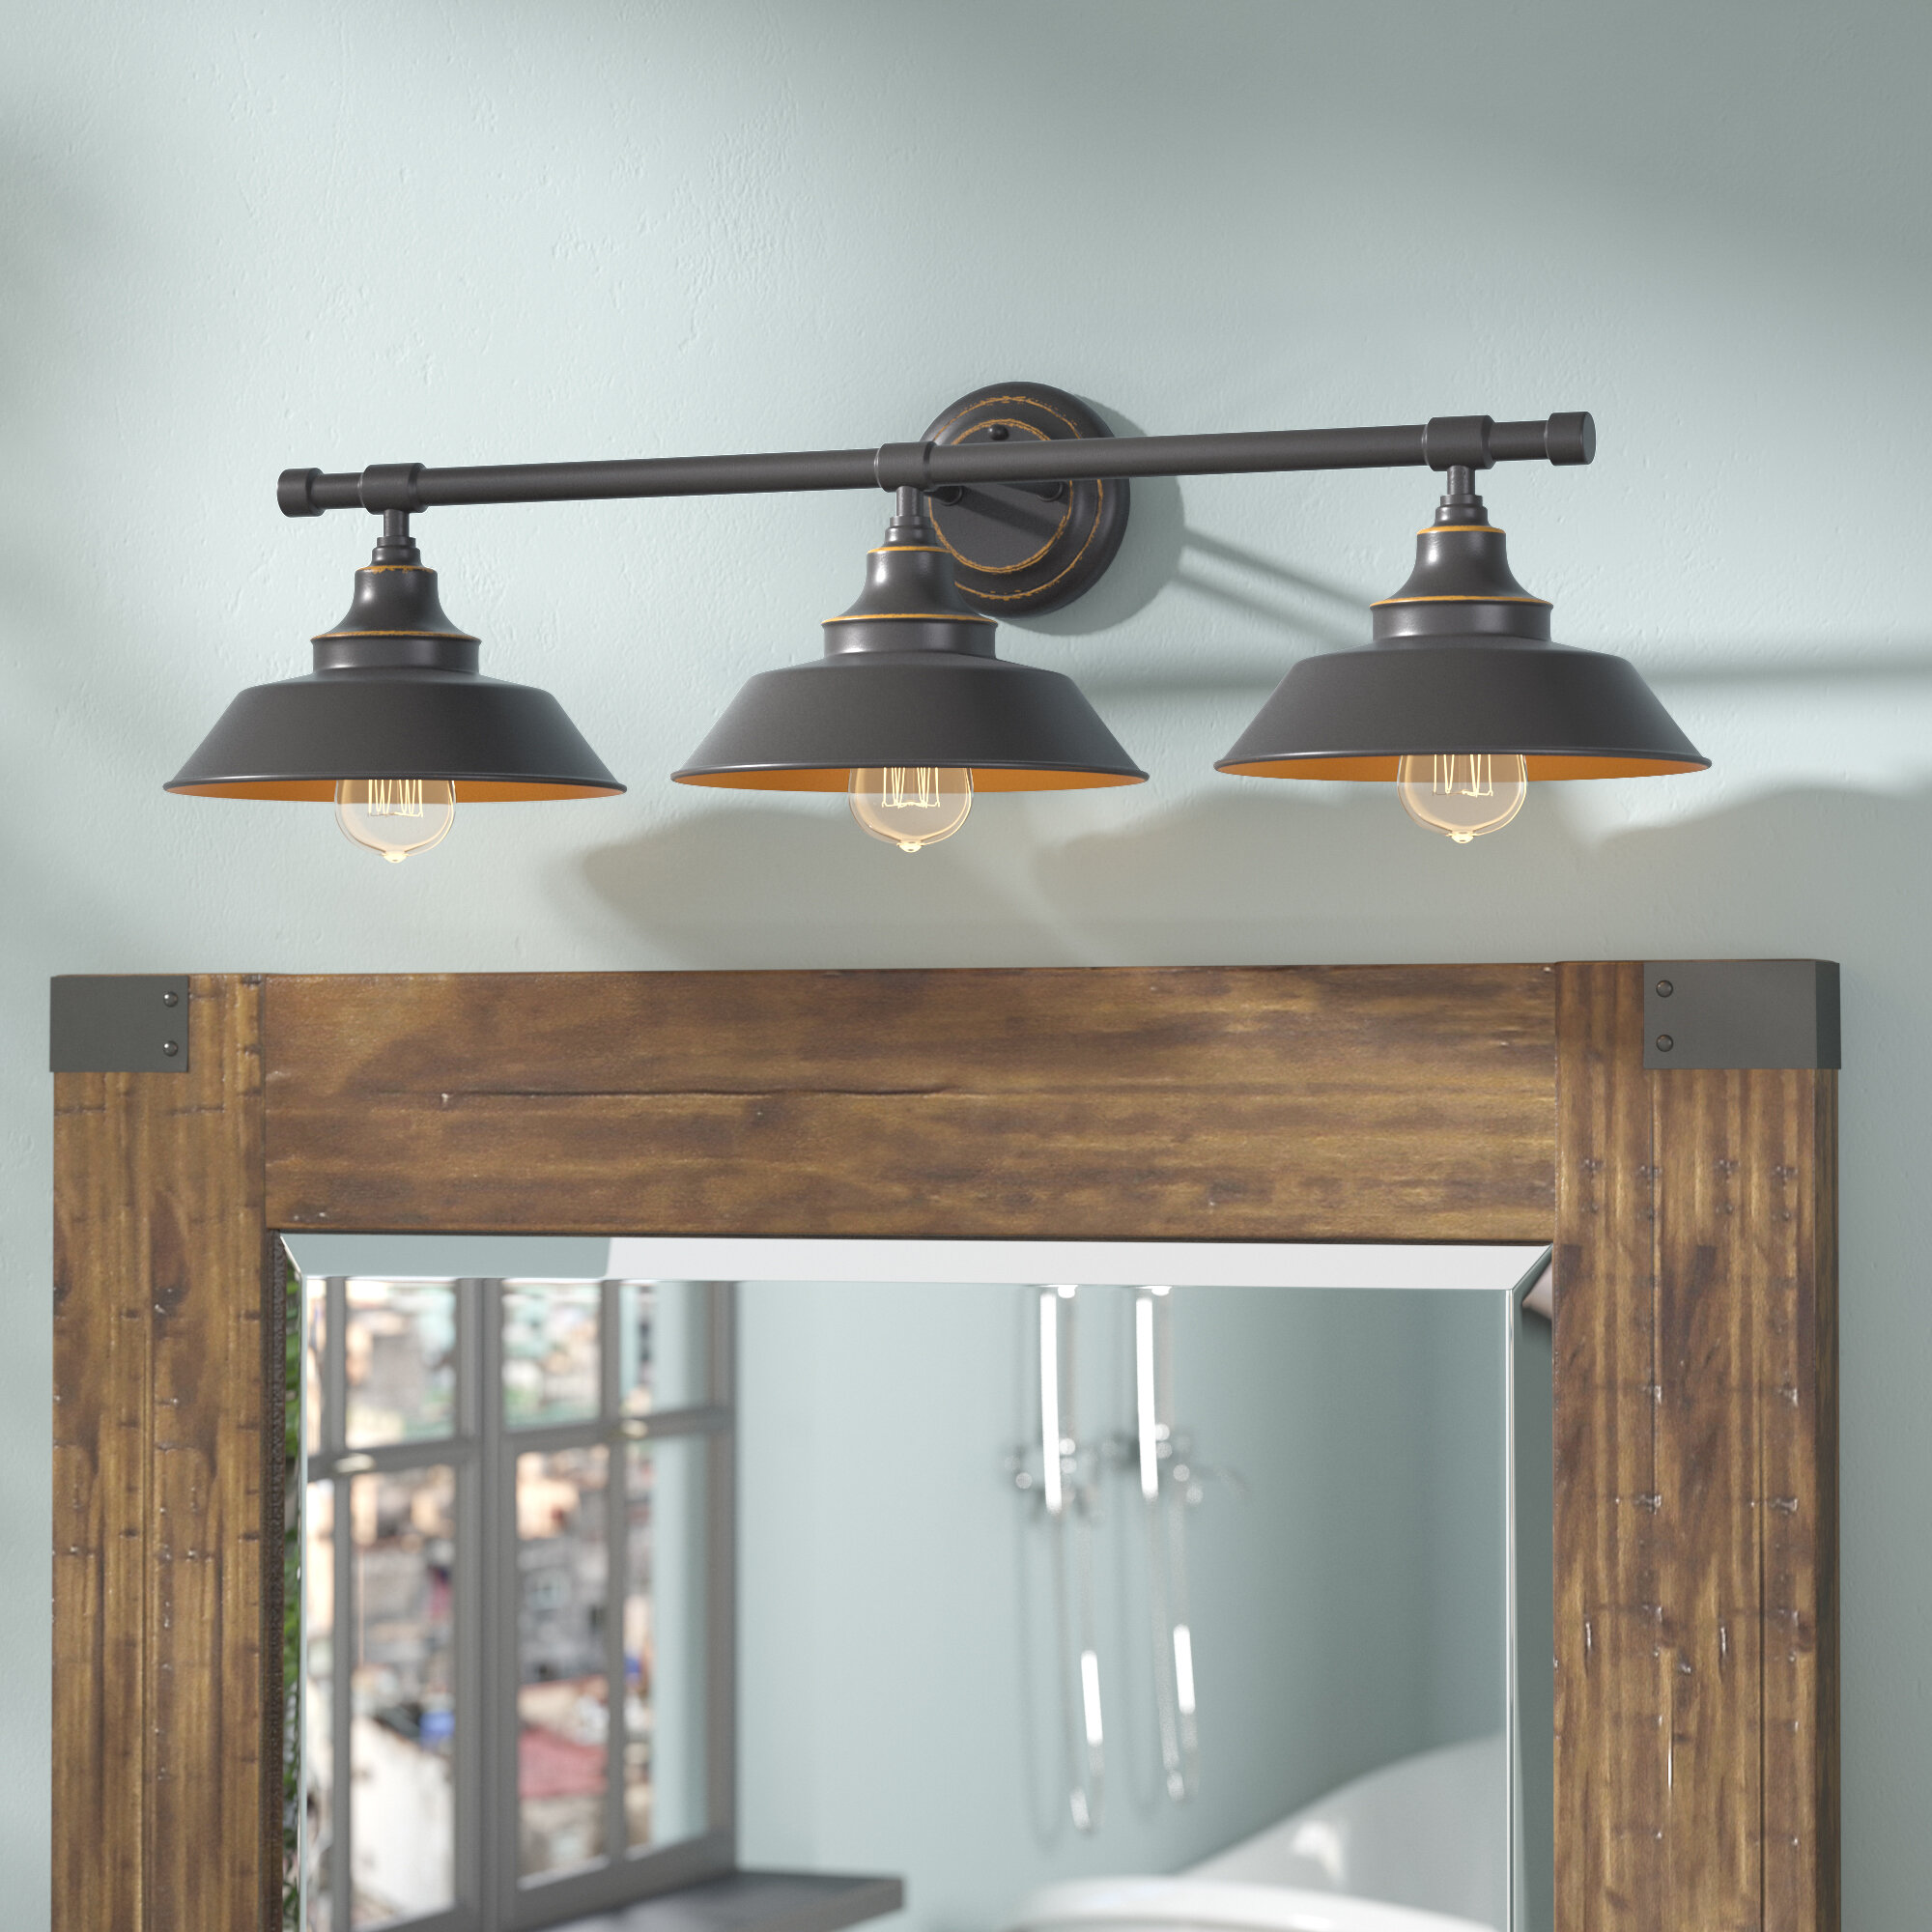 troy magnifying image bronze and shipyard cfm solid ribbed wide glass embarcadero item inch in clear bathroom bath light finish lighting shown vanity